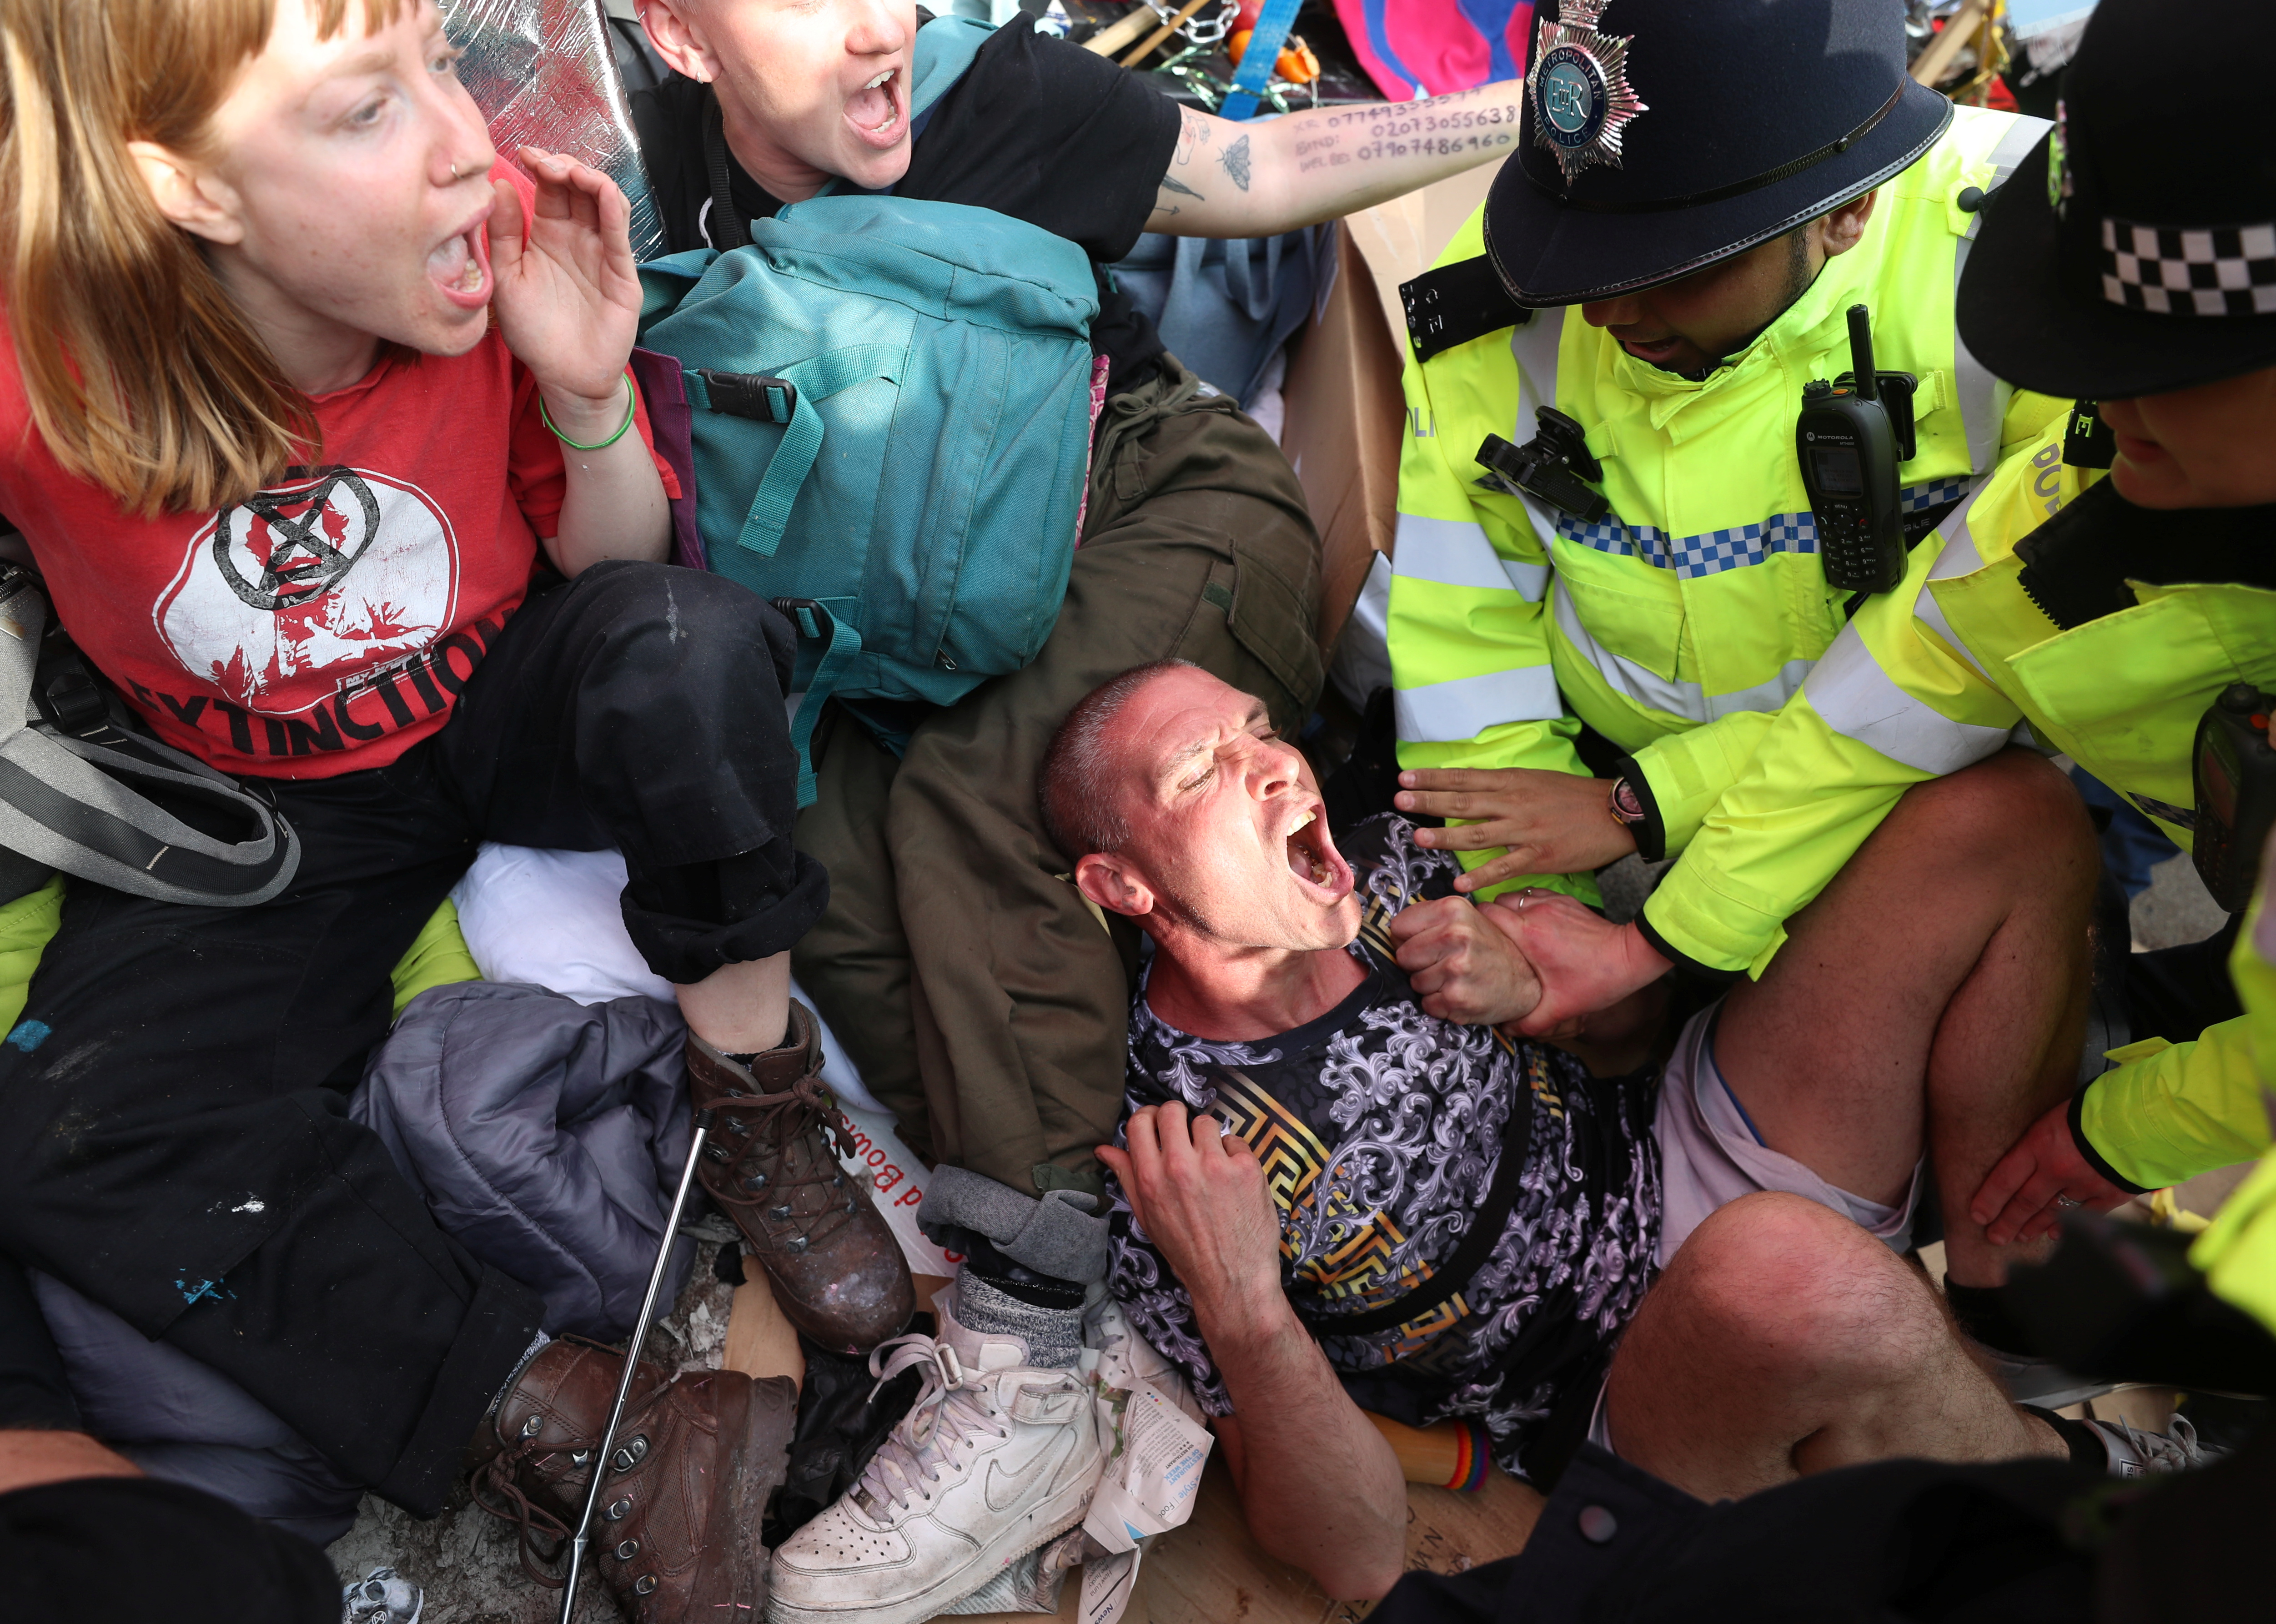 Police officers detain climate change activists at Oxford Circus during the Extinction Rebellion protest in London, Britain April 18, 2019. REUTERS/Simon Dawson.